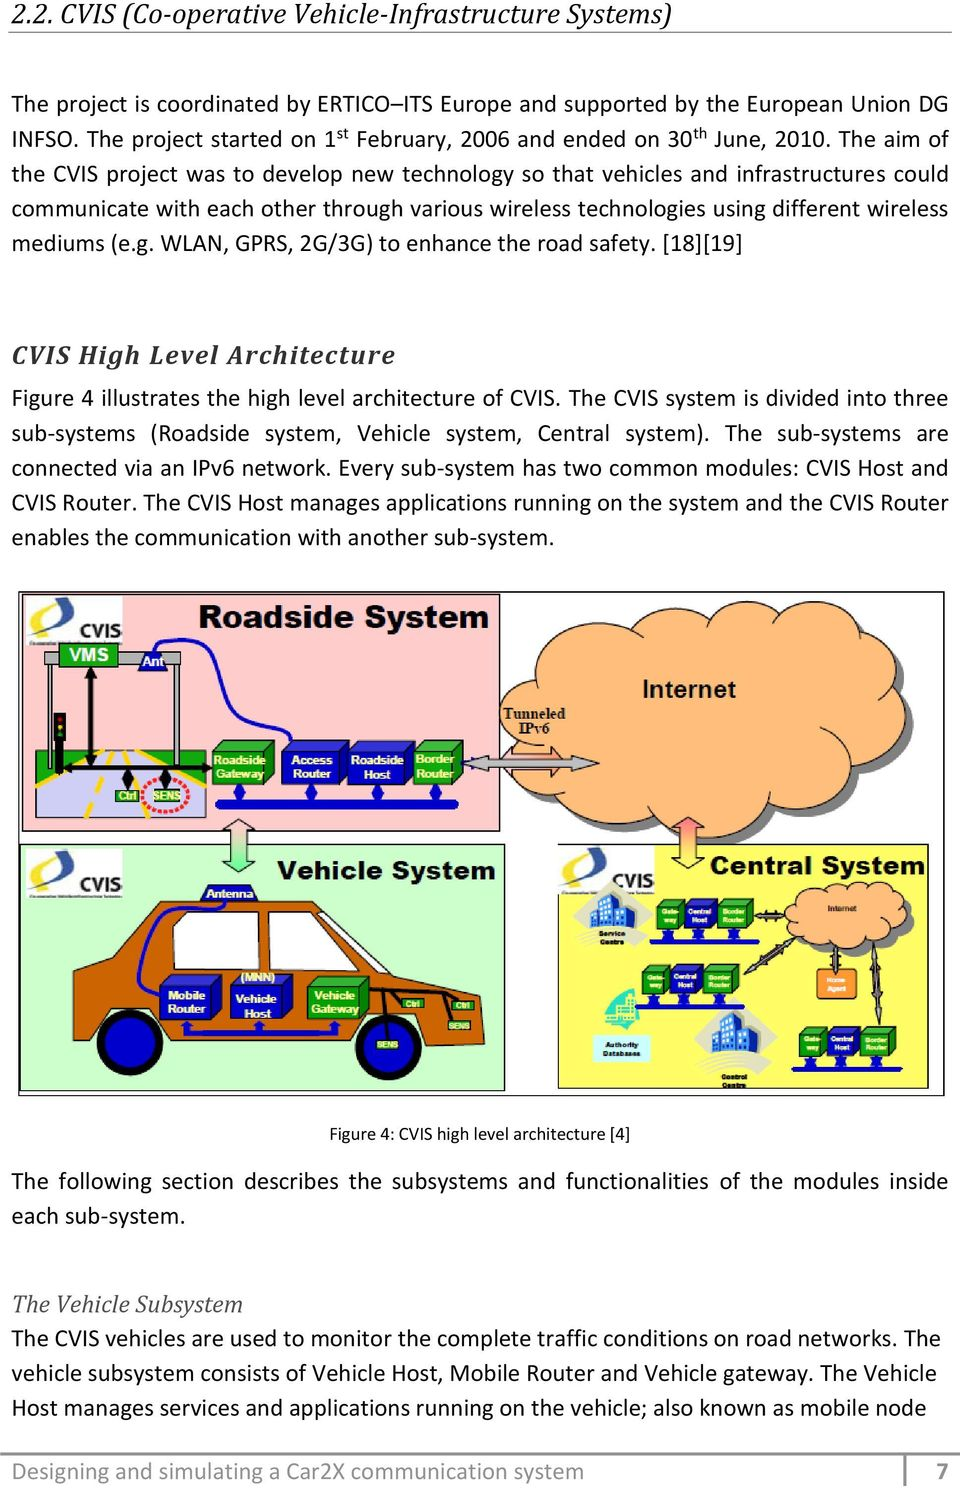 The aim of the CVIS project was to develop new technology so that vehicles and infrastructures could communicate with each other through various wireless technologies using different wireless mediums